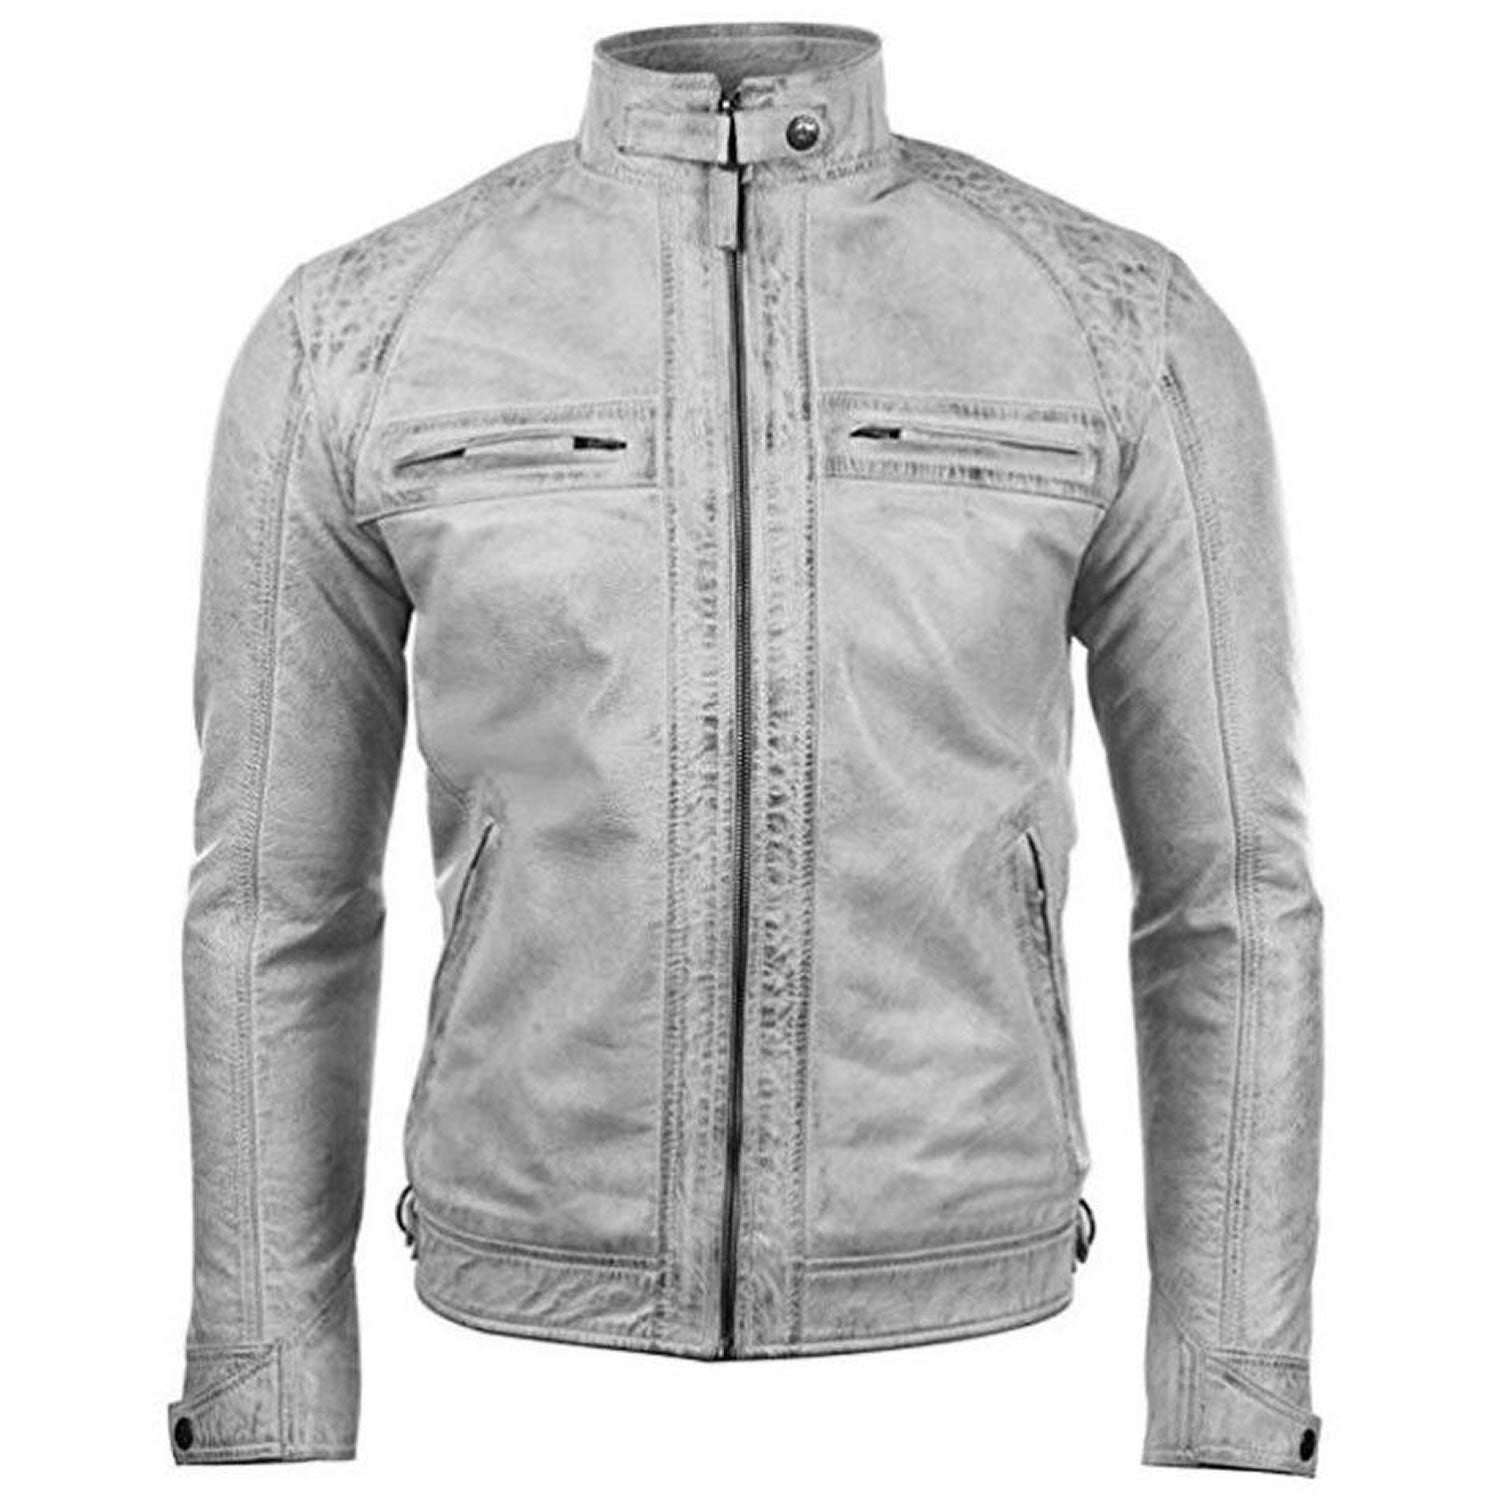 7ab7a0152 Men's Biker Motorcycle Vintage Distressed White Leather Jacket – Sa ...